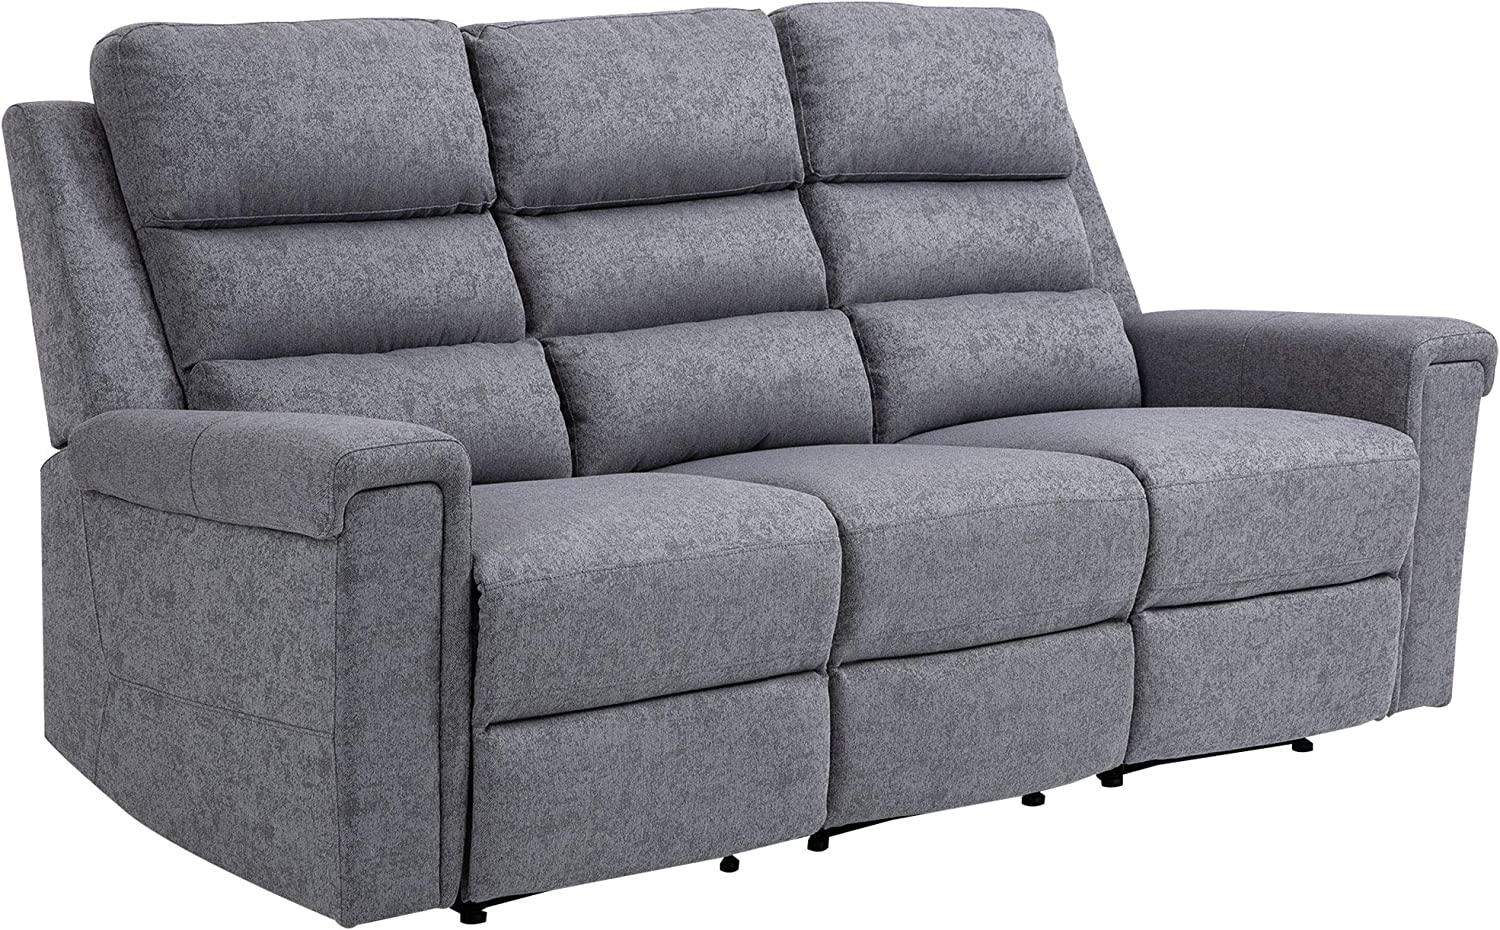 HOMCOM Modern 3 Shipping included Seater Manual Reclining with P Max 54% OFF Easy Lounger Sofa